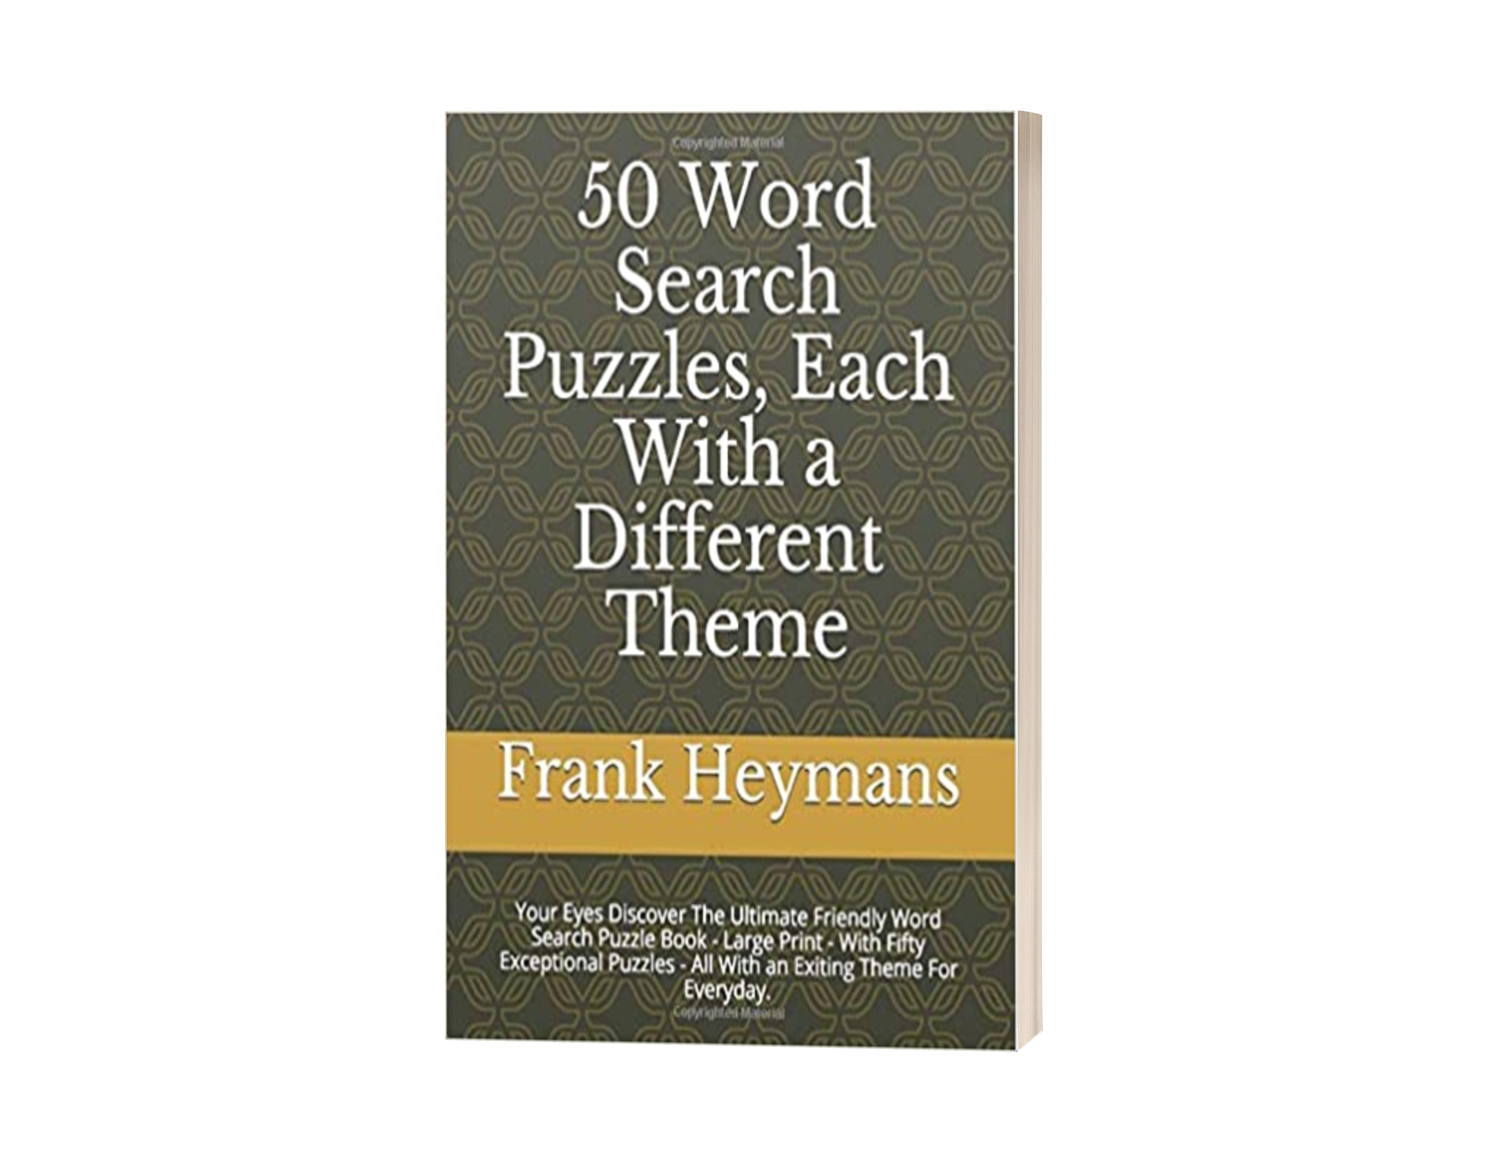 50 Word Search Puzzles, Each With a Different Theme